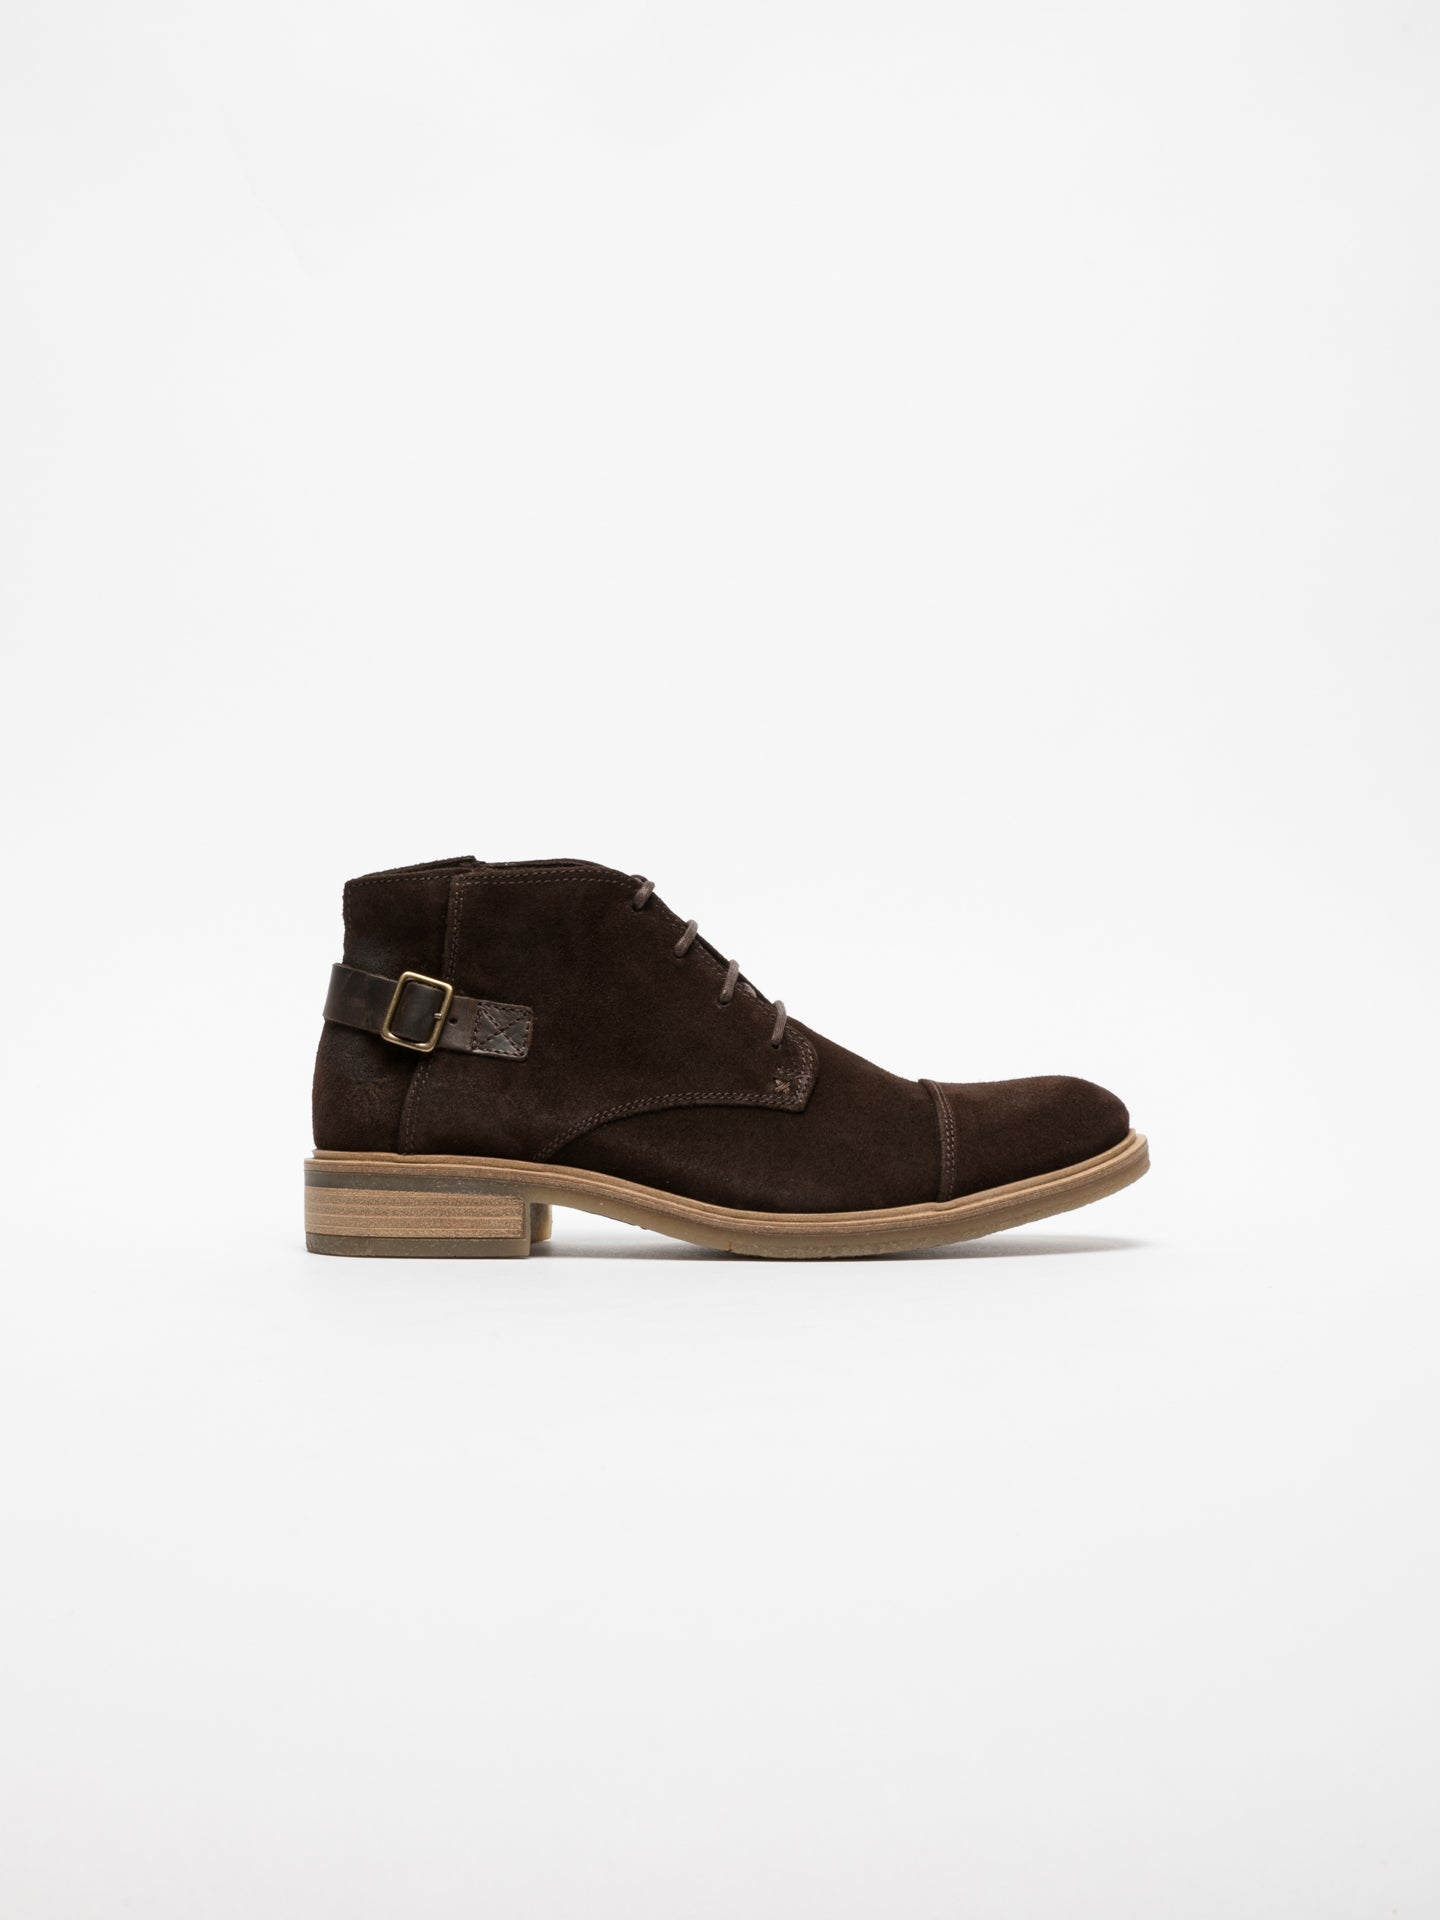 Fly London Brown Buckle Ankle Boots